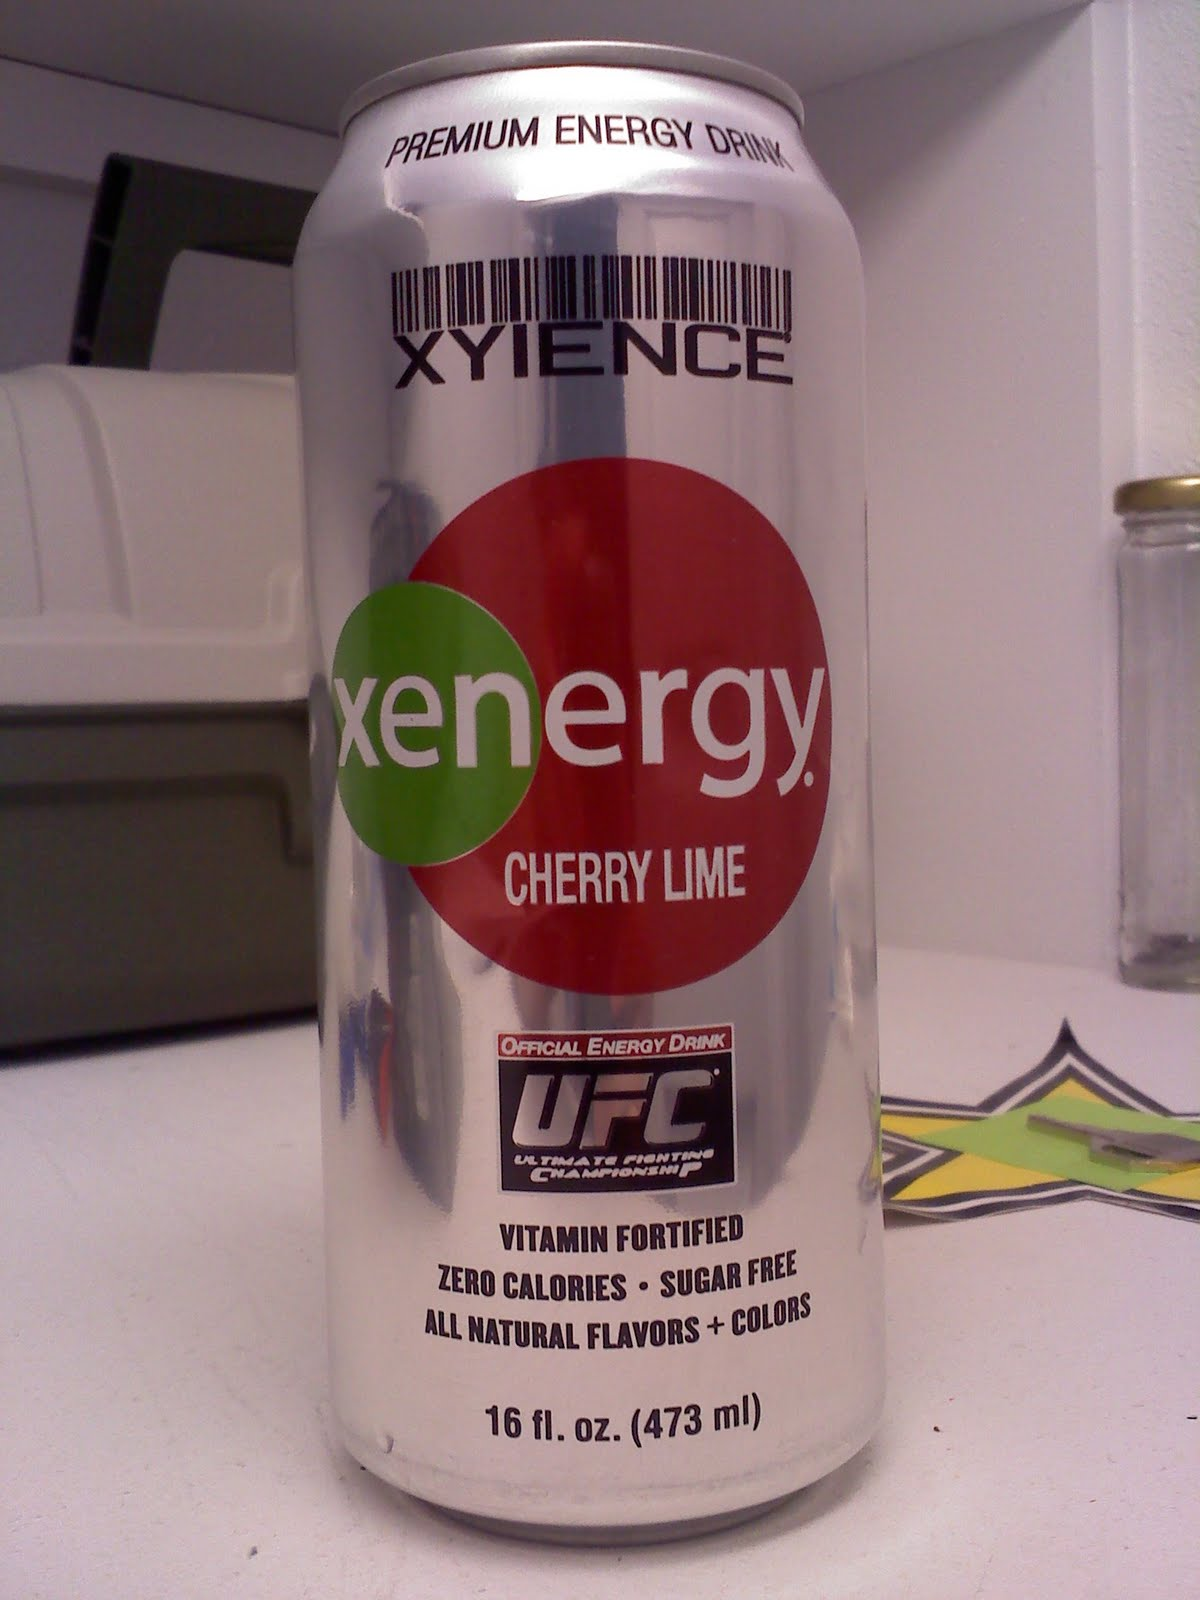 Caffeine Review For Xenergy Cherry Lime Premium